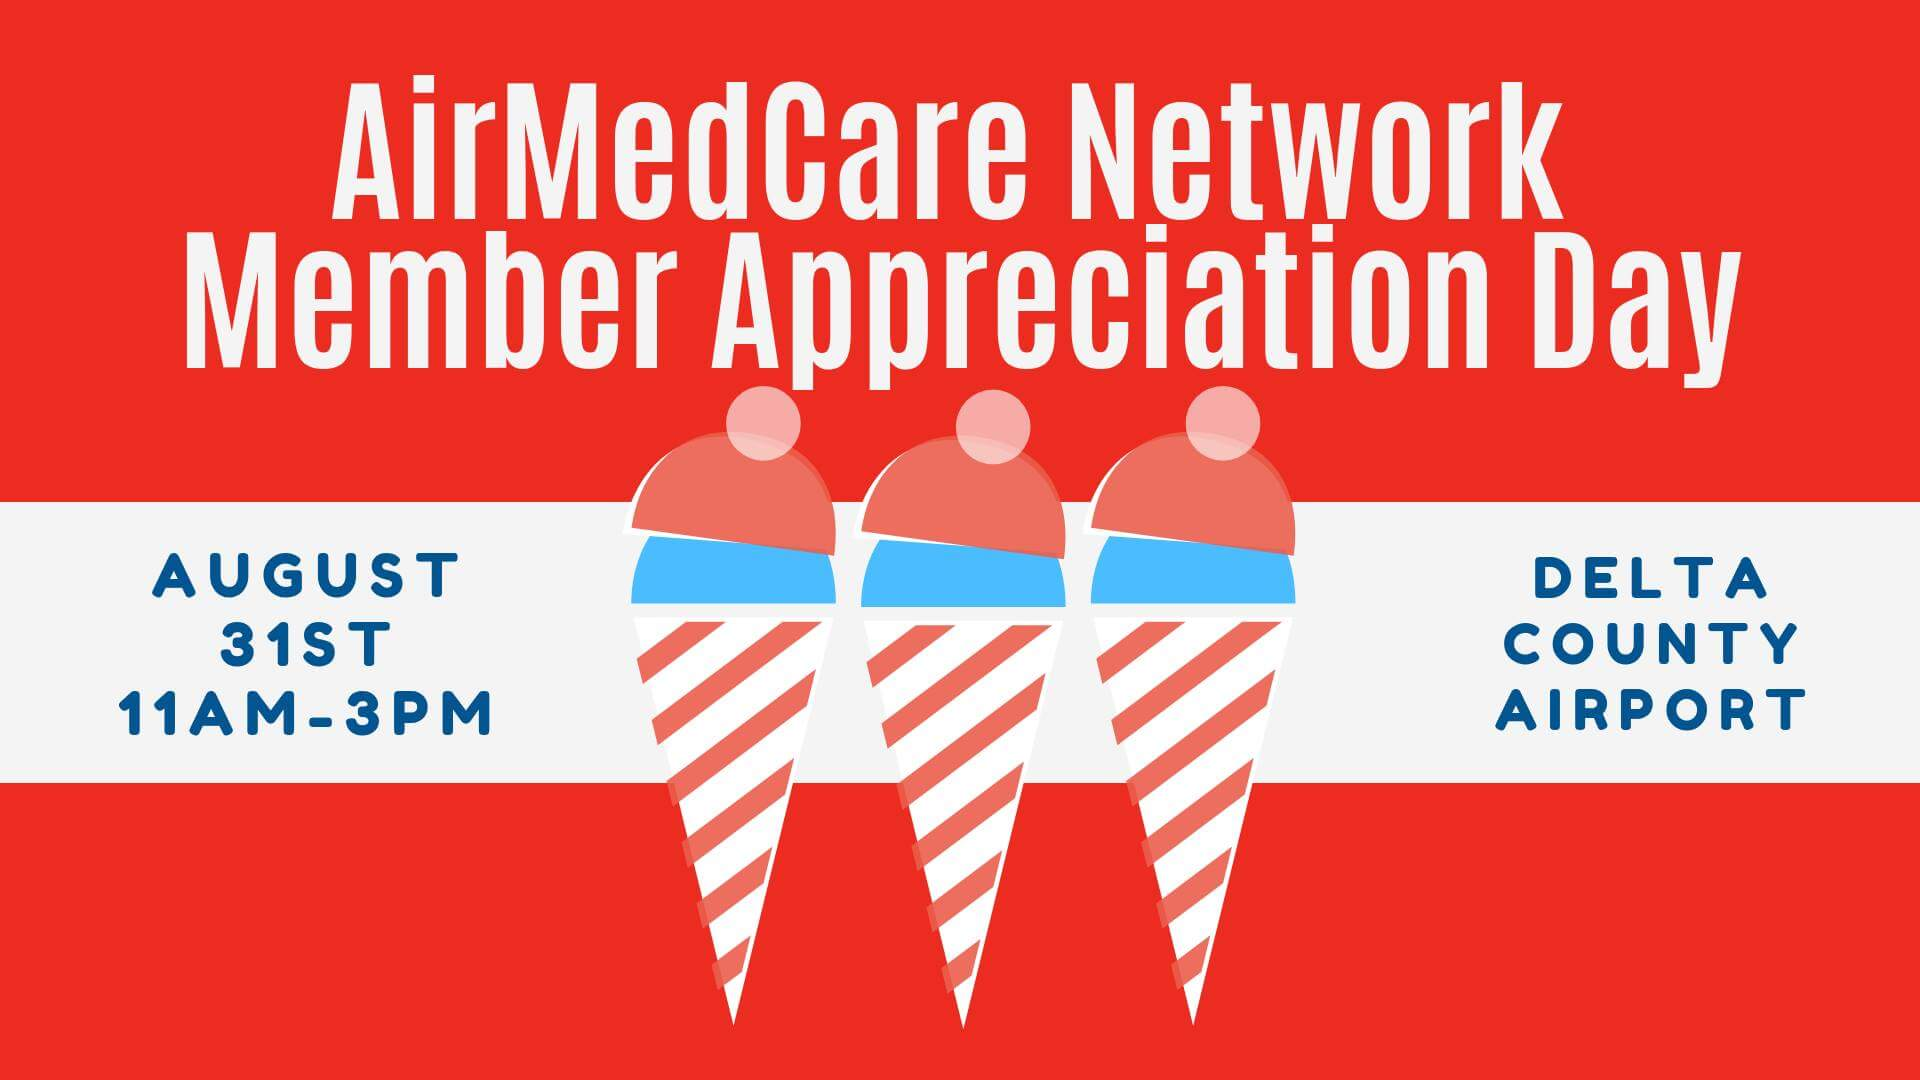 AirMedCare Network Member Appreciation Day. August 31st 11 am-3pm. Delta County Airport.